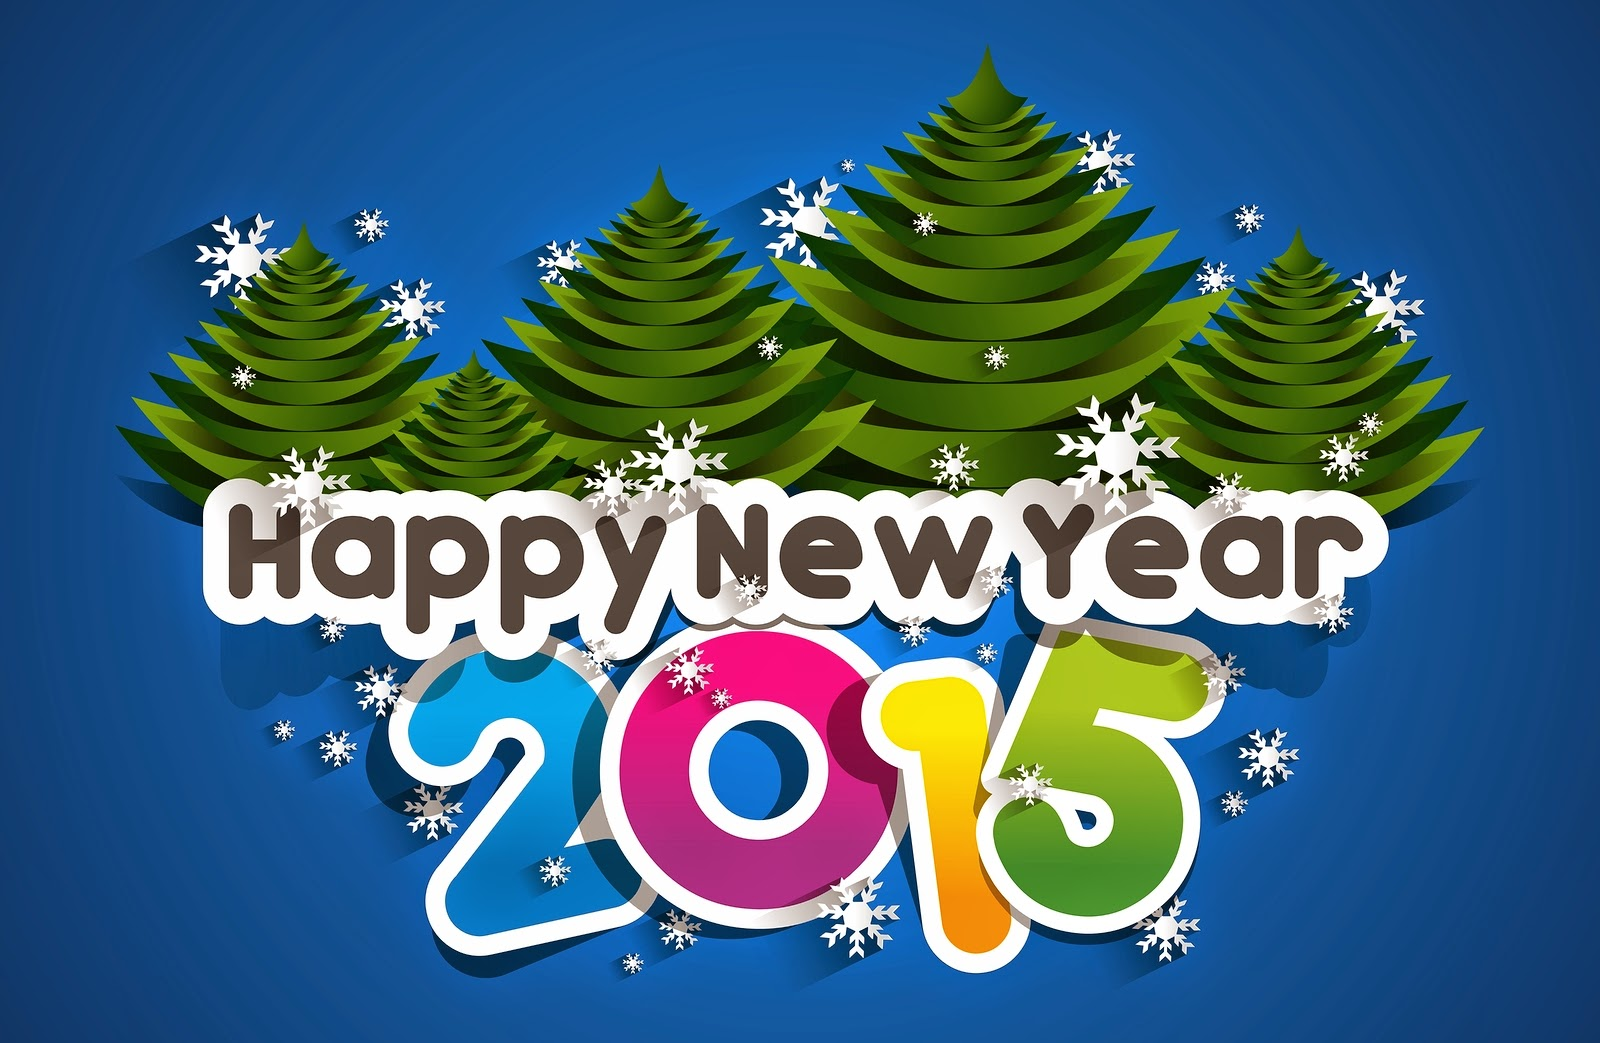 Lovely New Year 2015 Images wallpaper Gallery 1600x1043